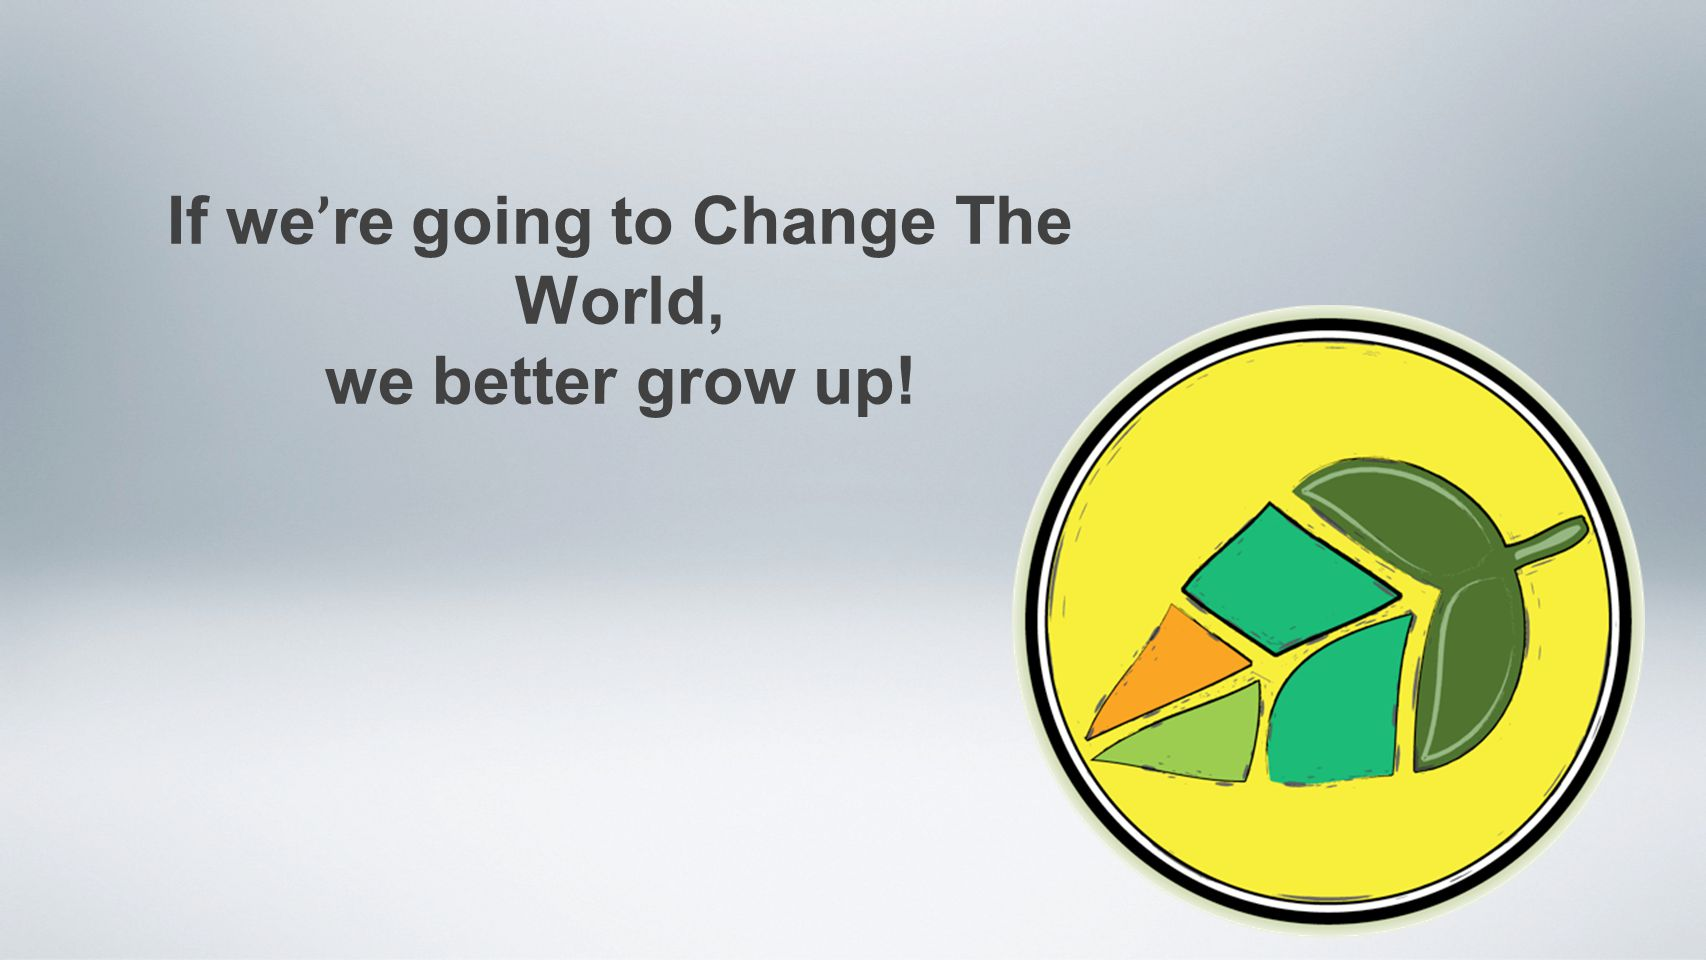 If we ' re going to Change The World, we better grow up!